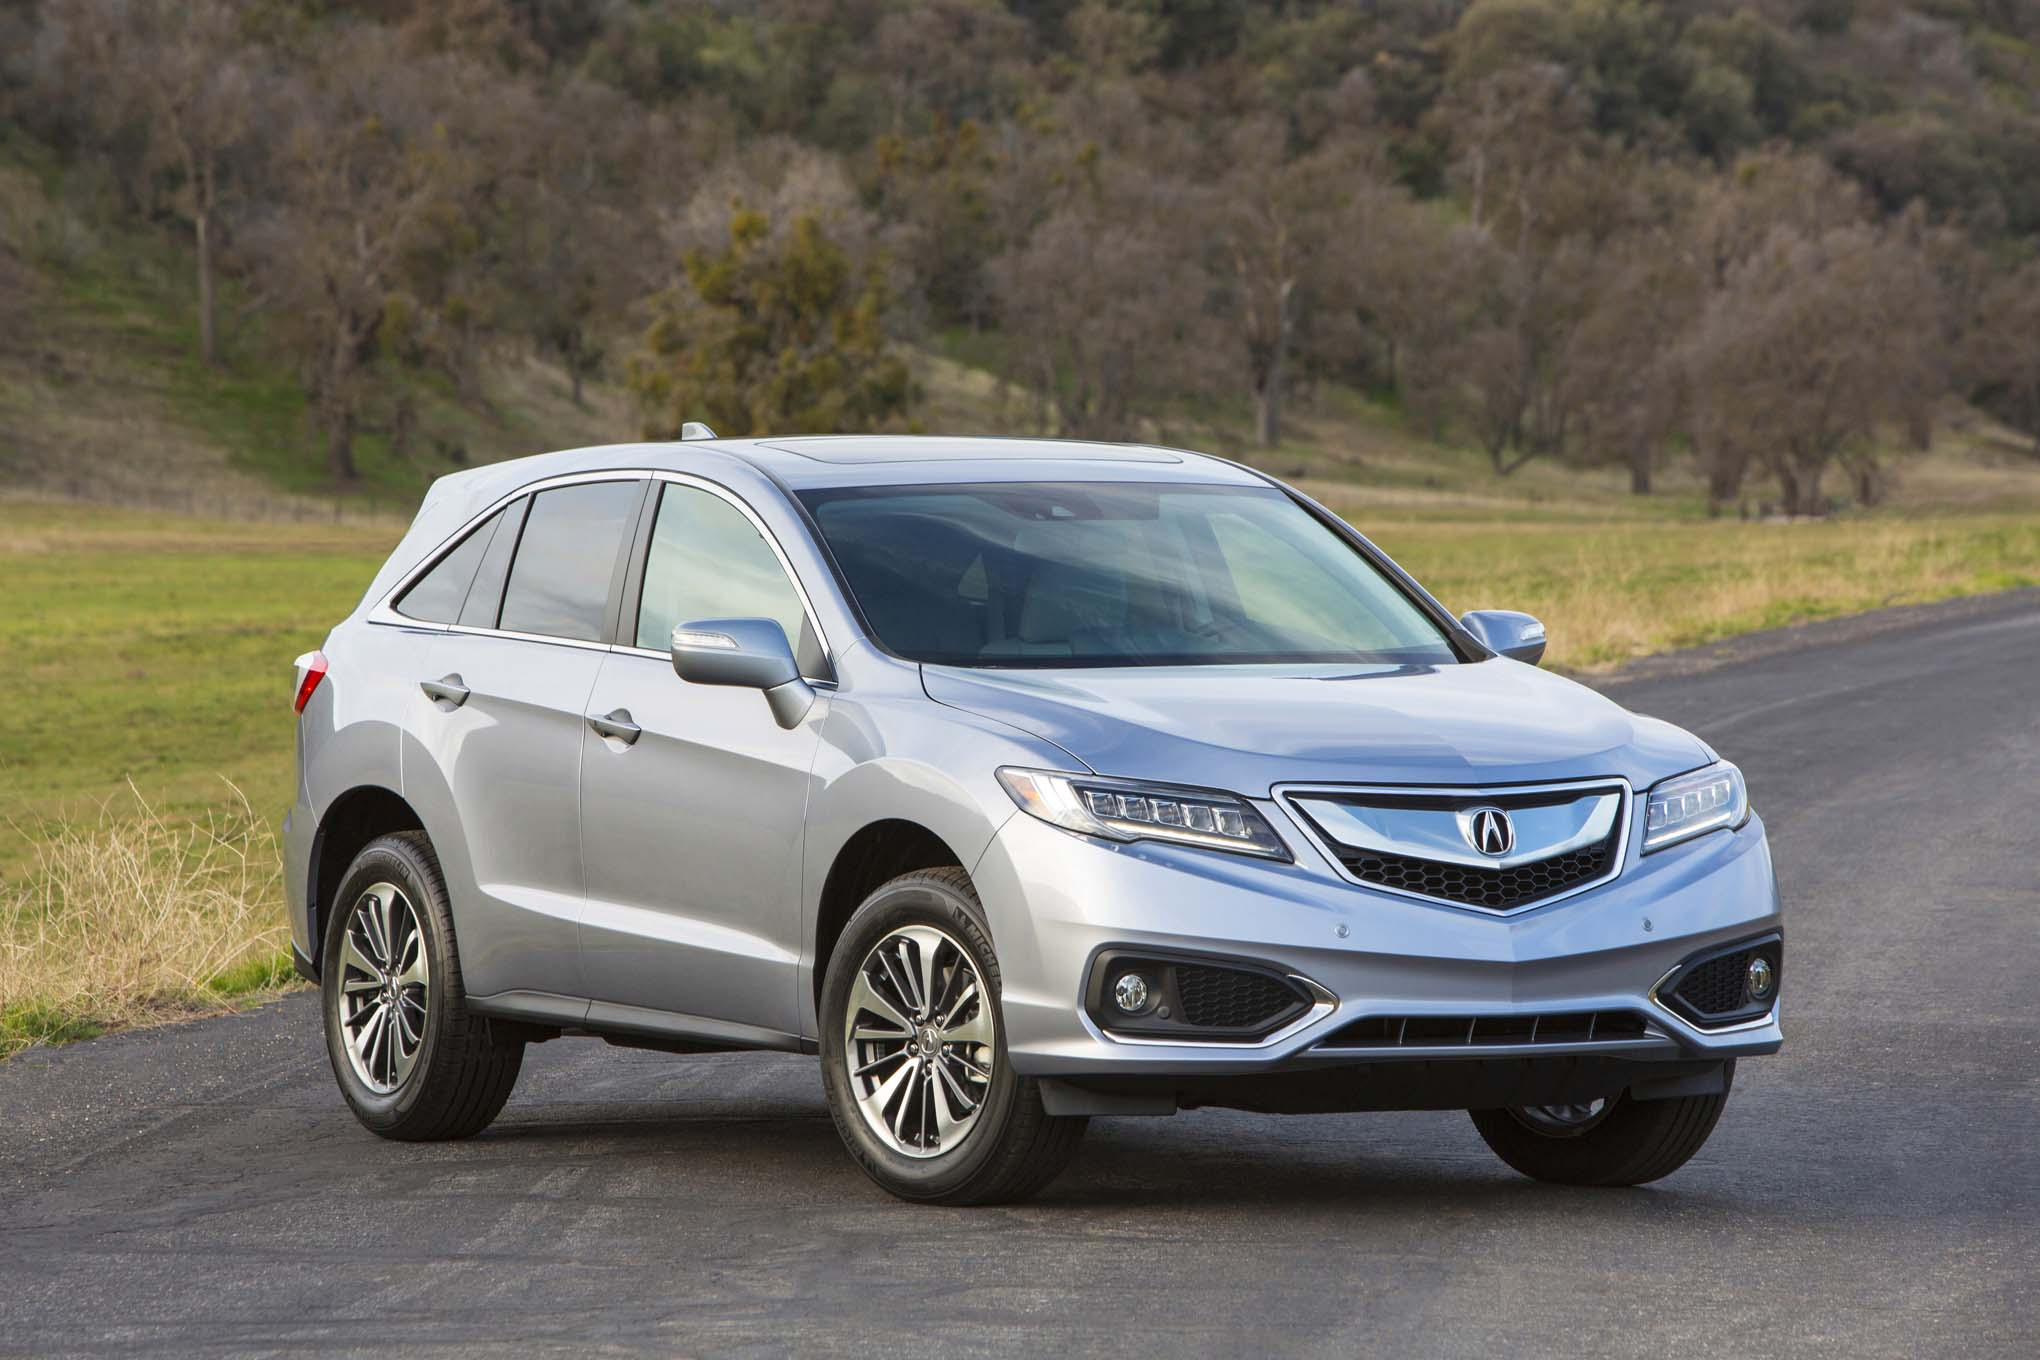 Rdx Acura 2017 | Best new cars for 2018